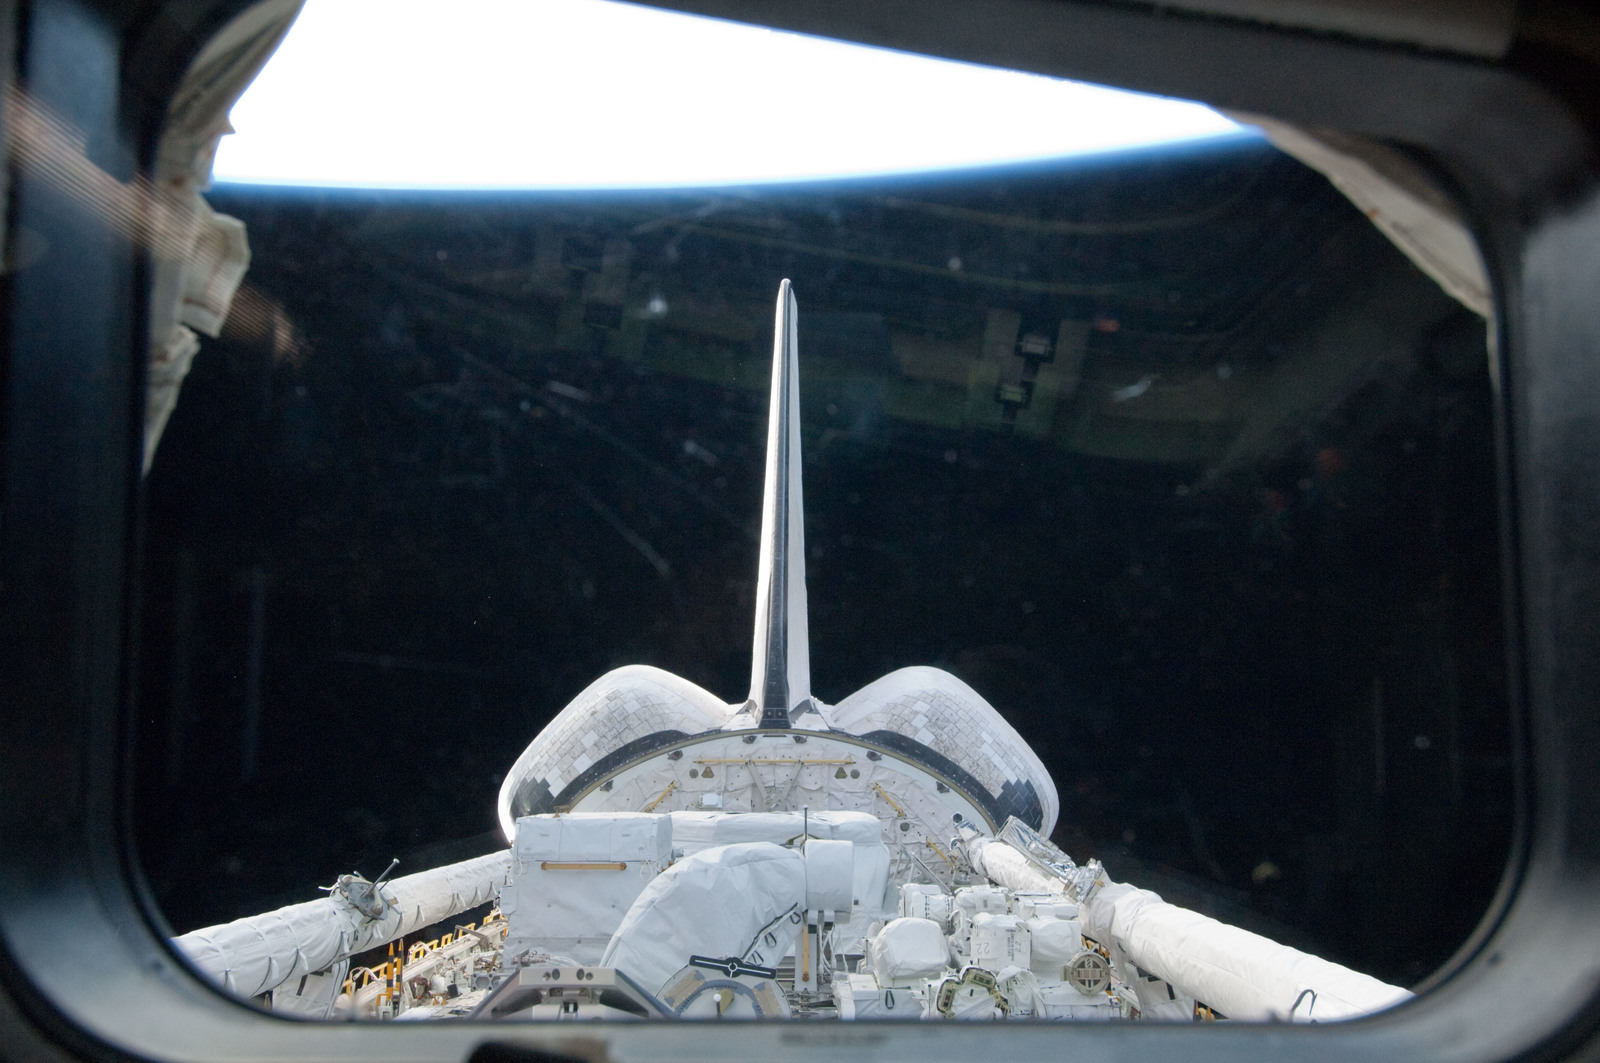 S134E005319 - STS-134 - View of the Shuttle Endeavour Payload Bay, OMS Pods, and Vertical Stabilizer